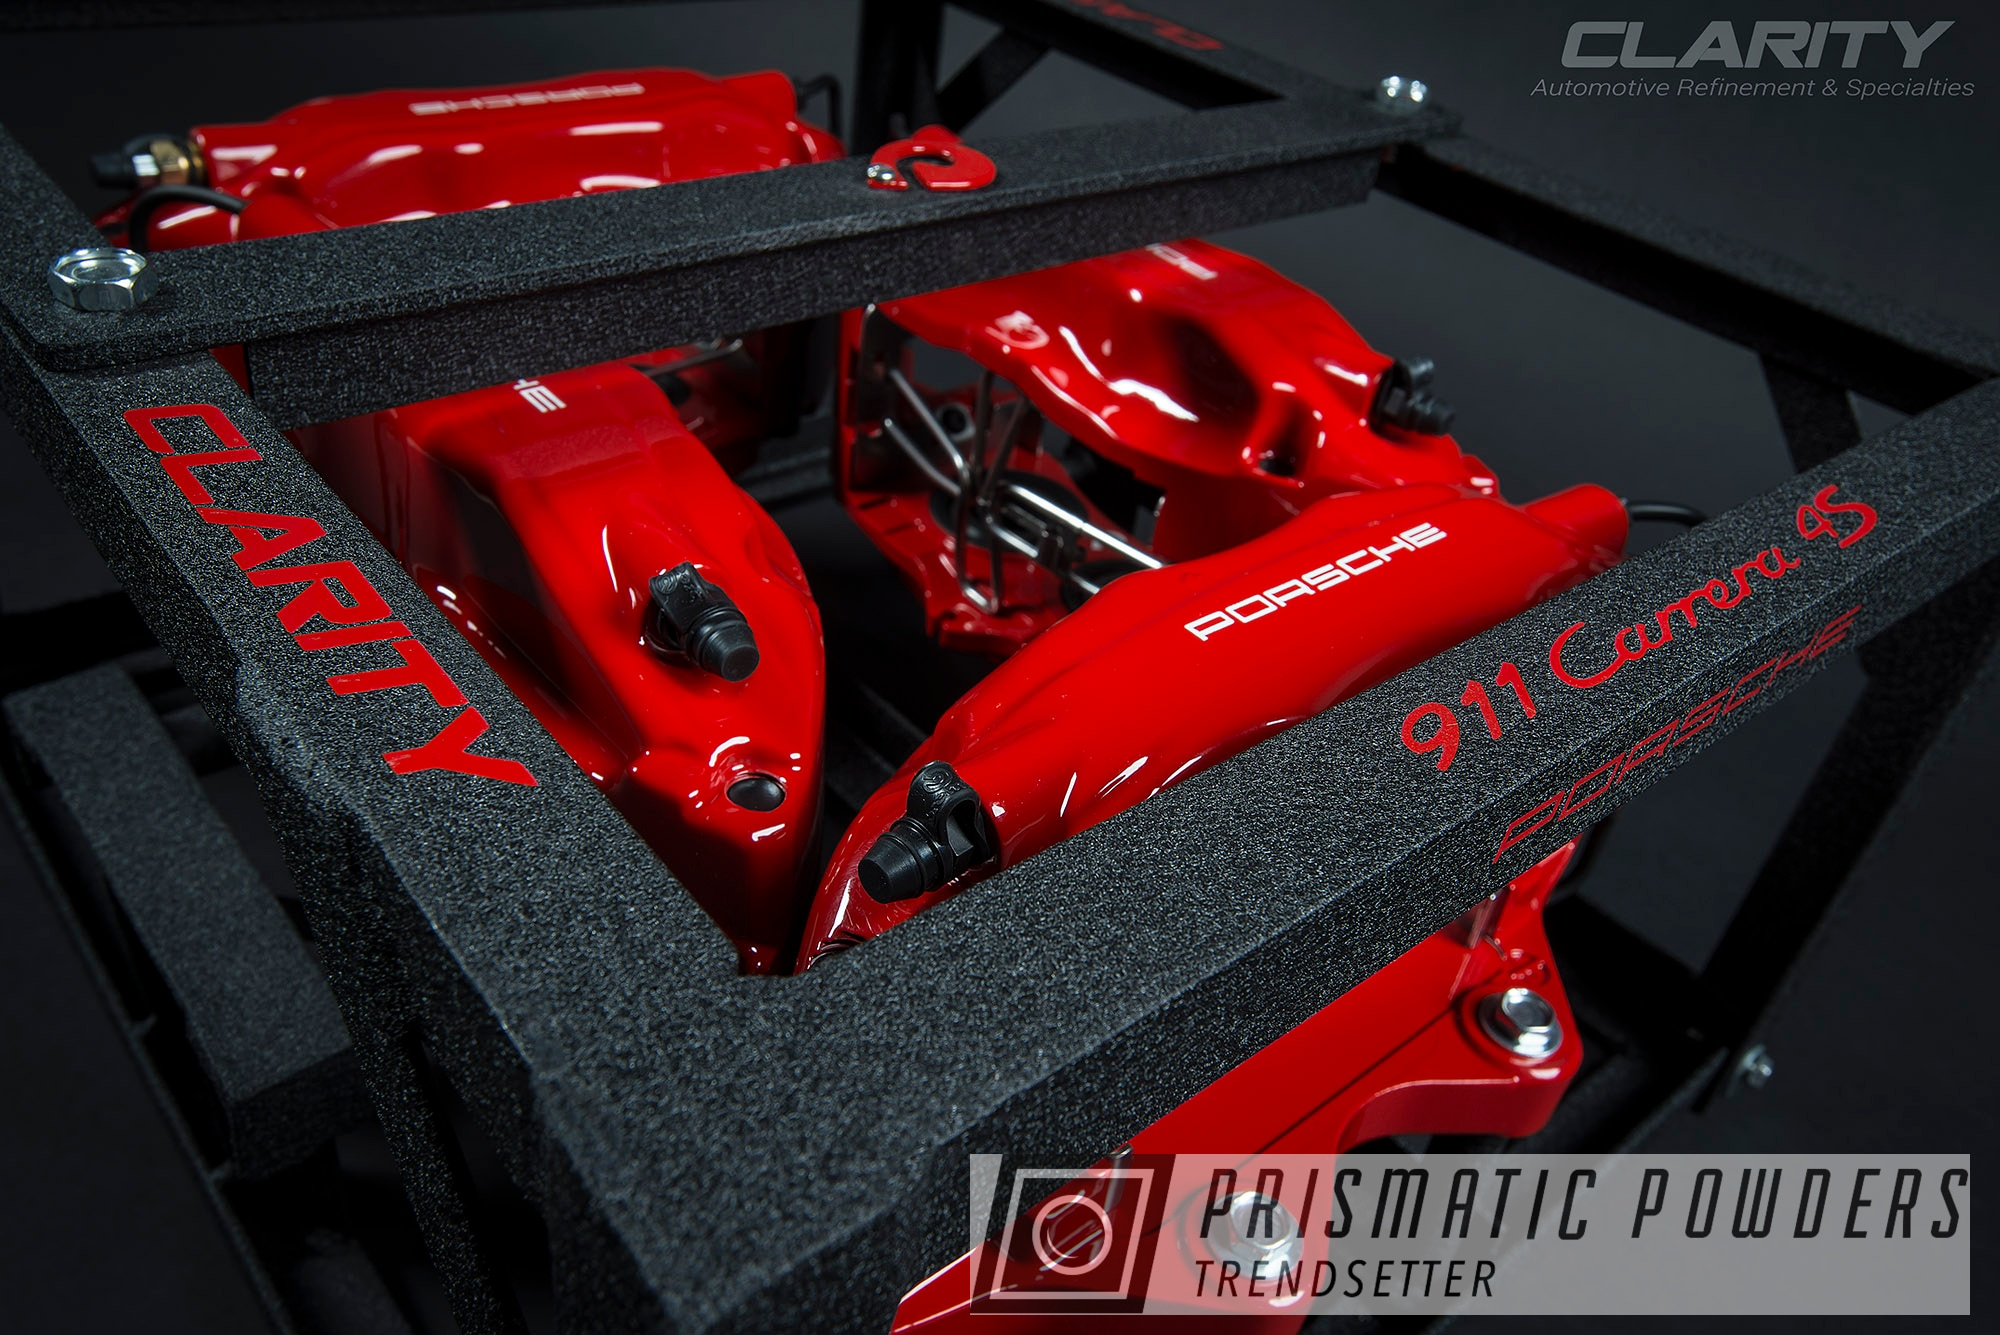 Powder Coating: Red Wheel PSS-2694,Automotive,Clear Vision PPS-2974,911T,Brembo,Brake Calipers,Porsche,Drive Clarity